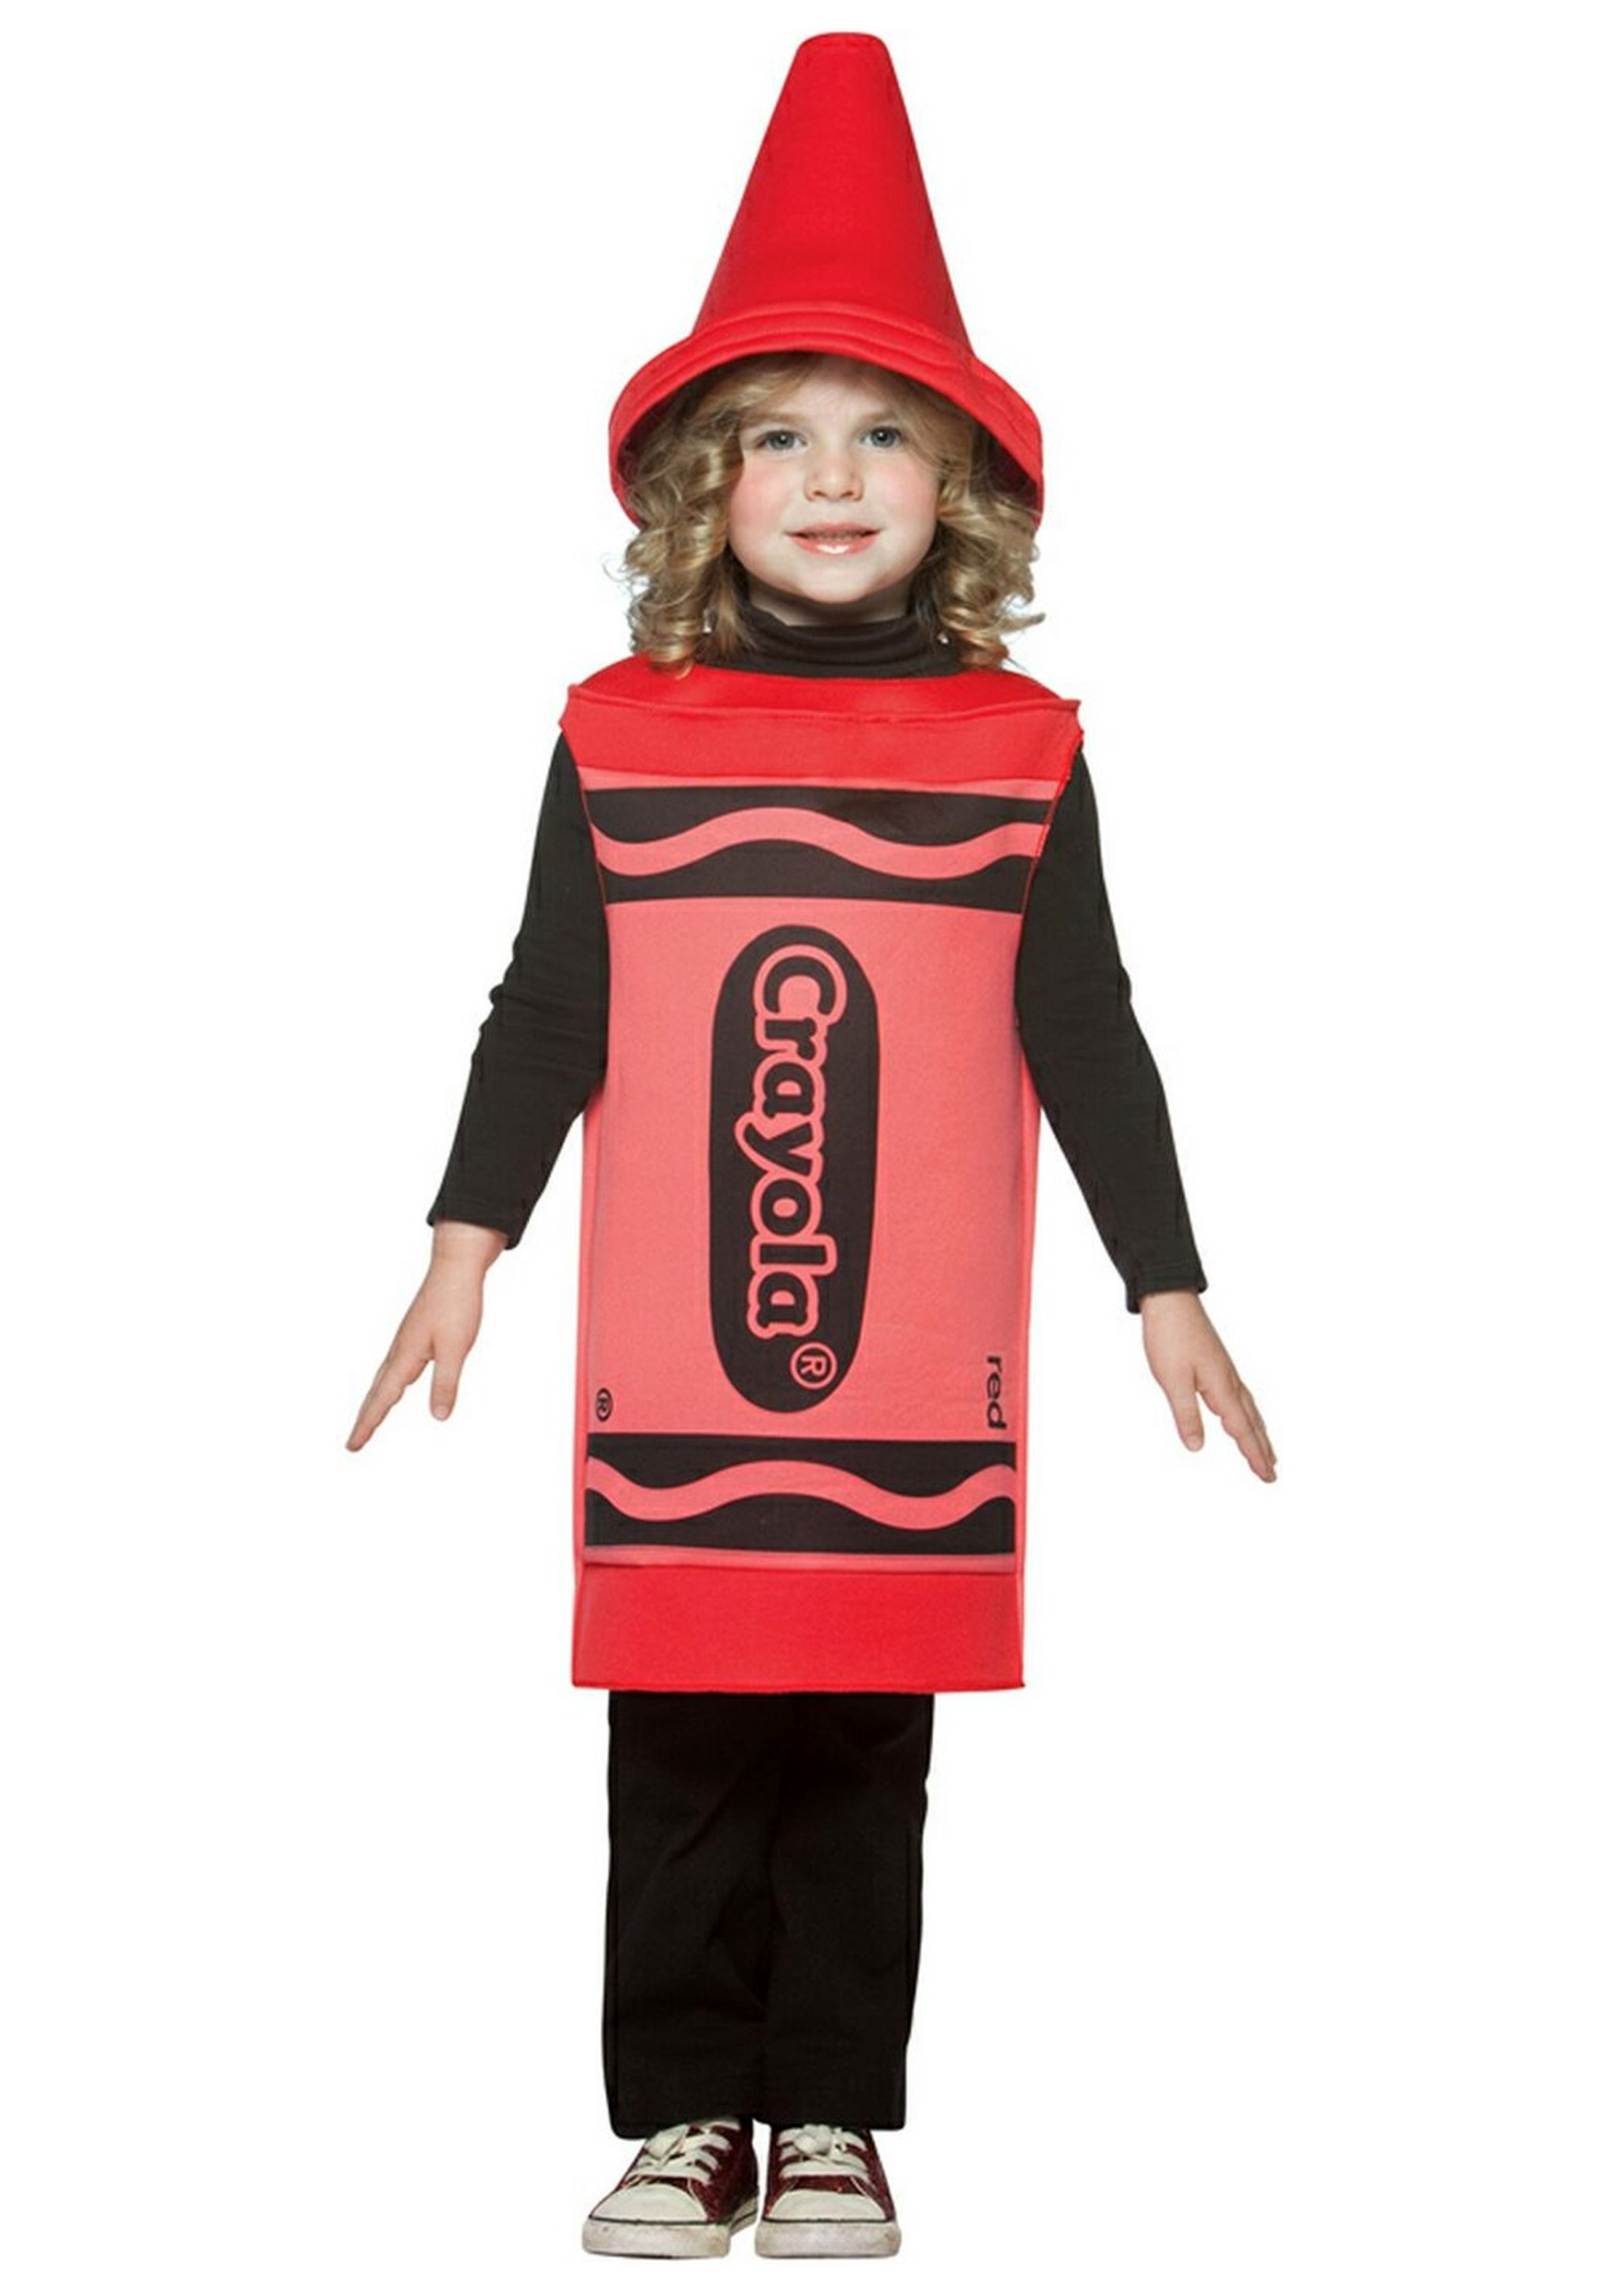 Red Crayon Toddler Costume  sc 1 st  Halloween Costume & Red Crayon Toddler Costume - Crayola Crayon Costumes